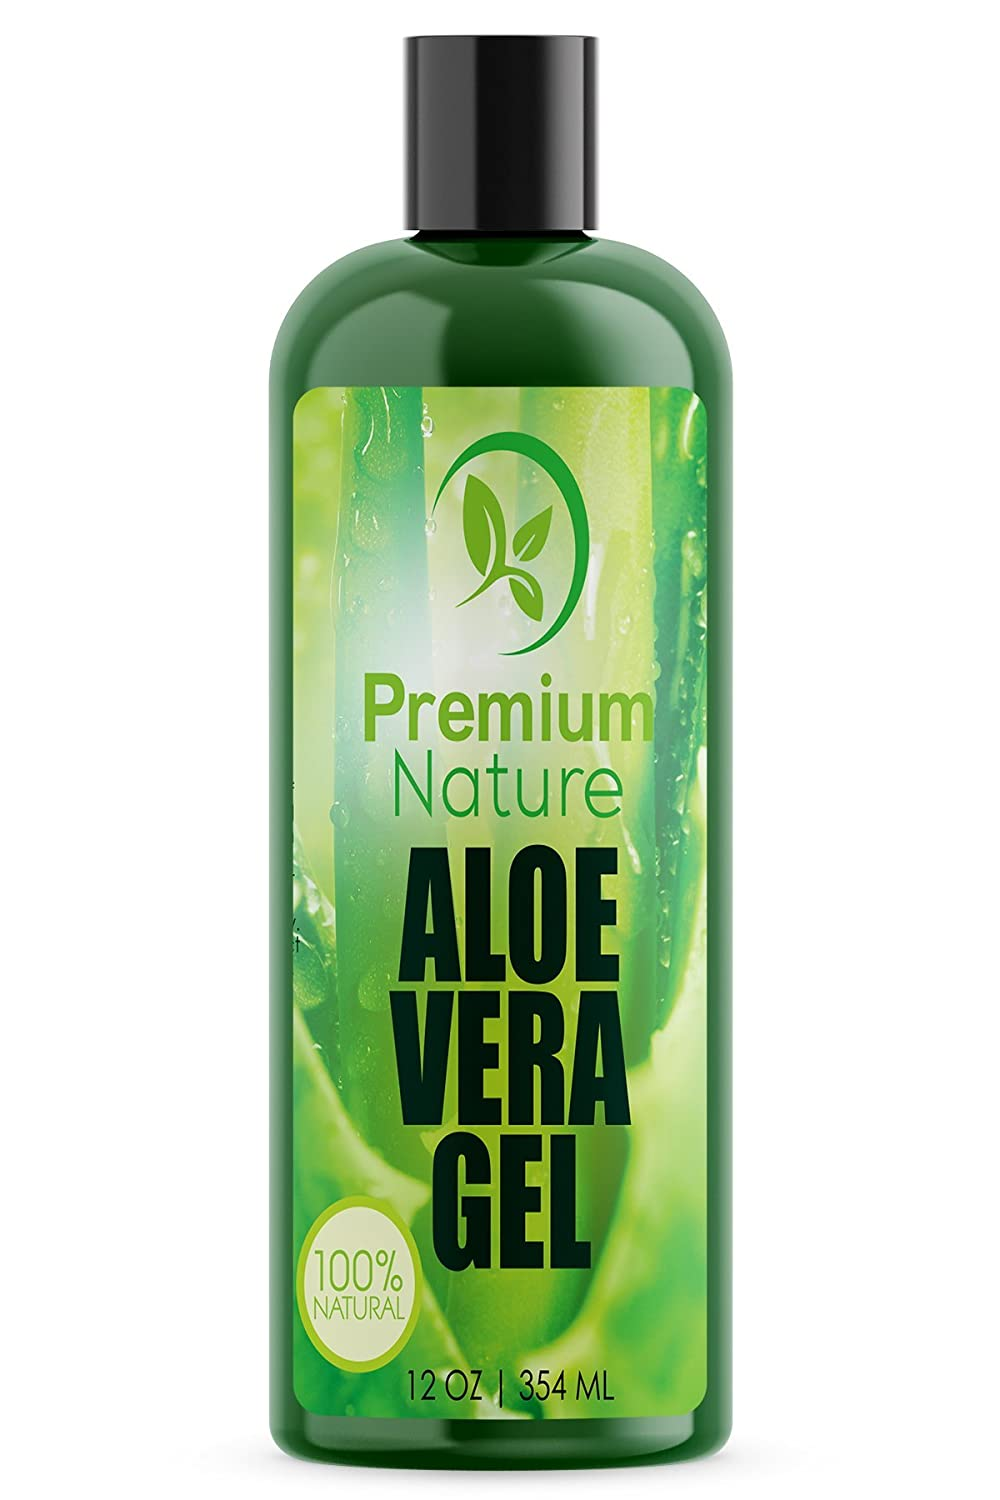 100% Organic Aloe Vera Gel for Face Body & Hair 12 oz Soothes & Rejuvenates Sun Burns Eczema, Insect Bites, Psoriasis, Rashes, Razor Bumps, Dry Skin, By Premium Nature Jmxu's B01G5UWHUO